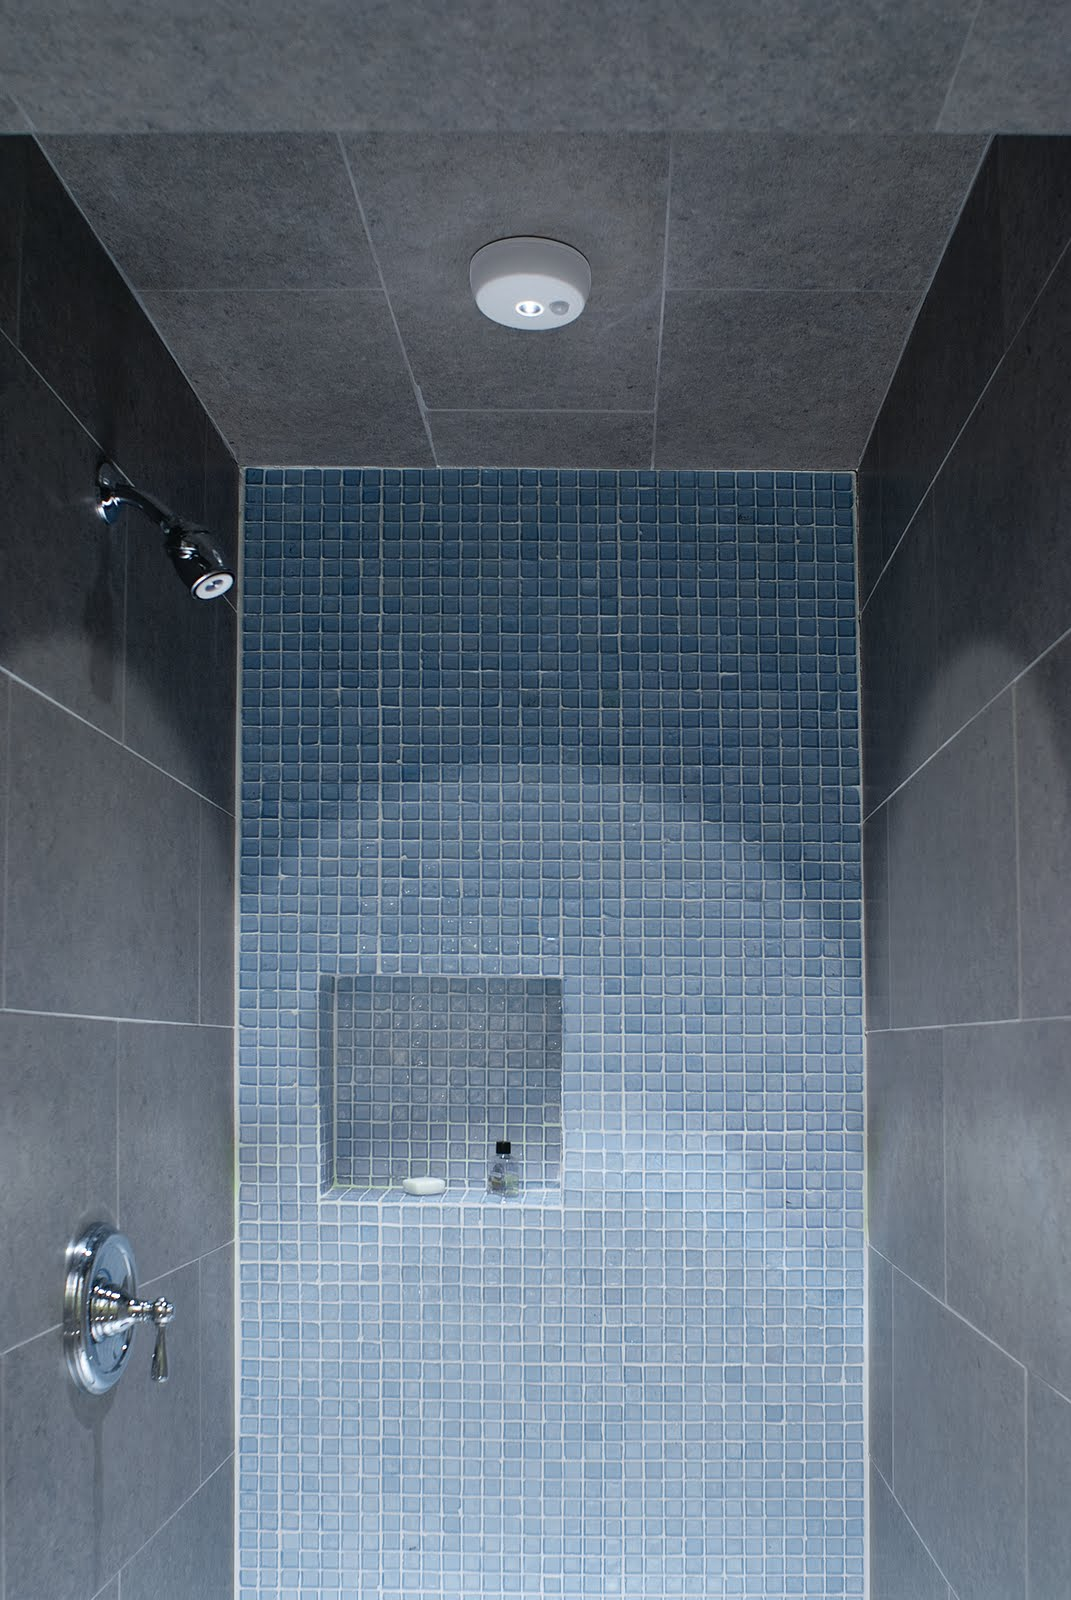 lighting for shower. bright wireless shower lightsthe best way to light a dark lighting for n